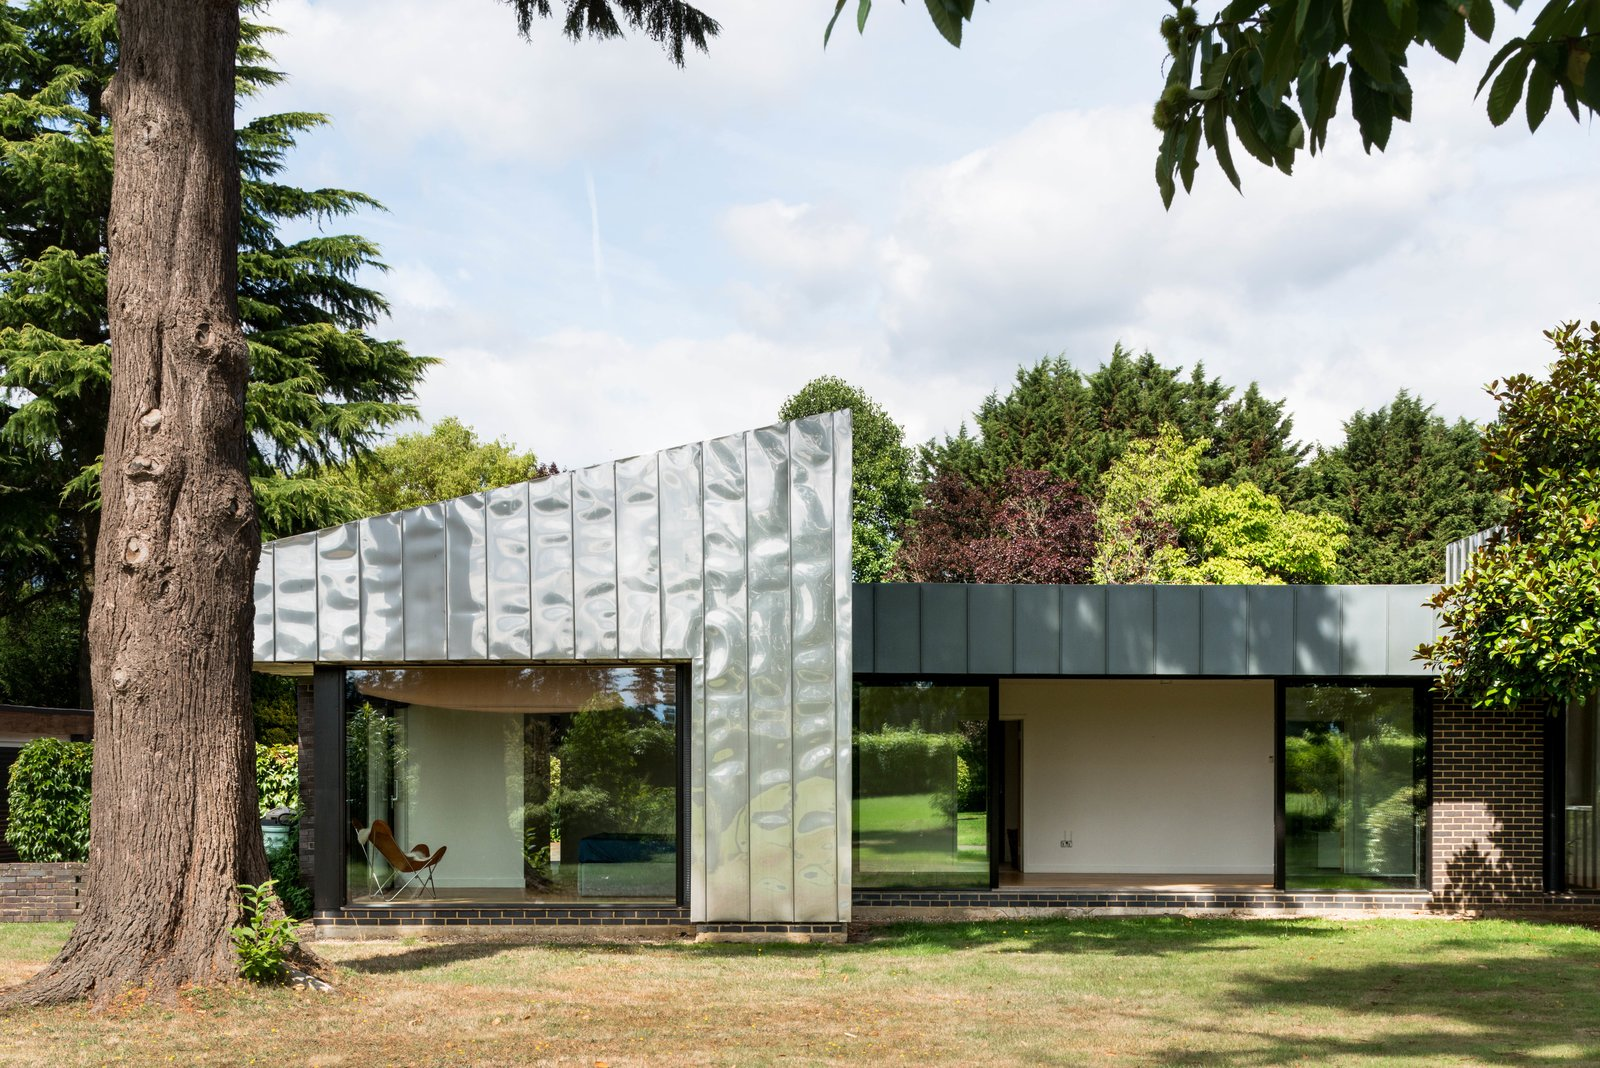 Exterior, Flat RoofLine, Metal Siding Material, Metal Roof Material, Brick Siding Material, Glass Siding Material, Mid-Century Building Type, and House Building Type  Best Photos from Clad in Stainless Steel, a Commanding Midcentury in England Wants $3.2M